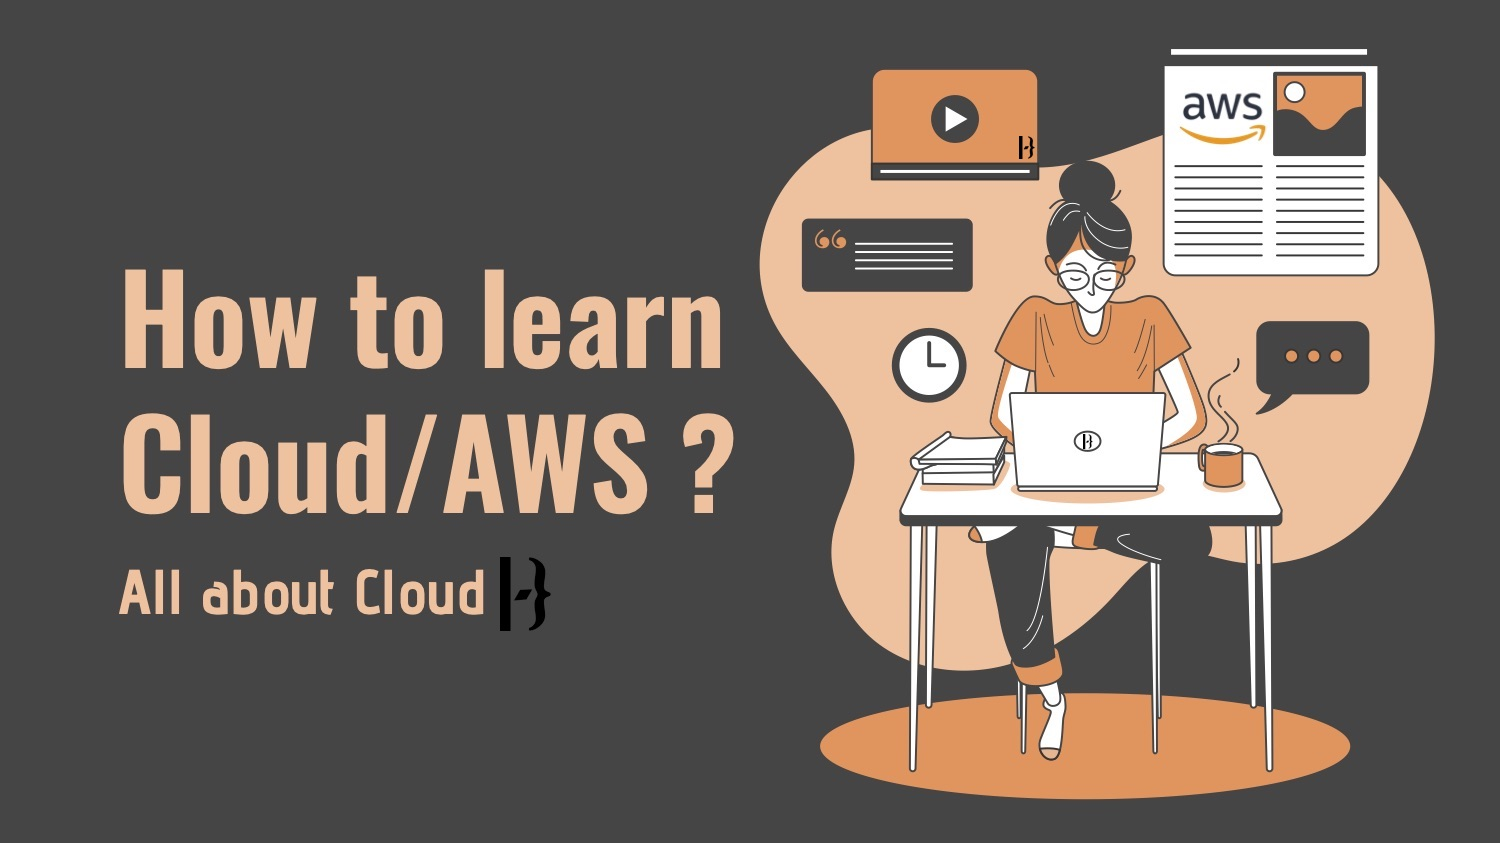 How to learn AWS Cloud?